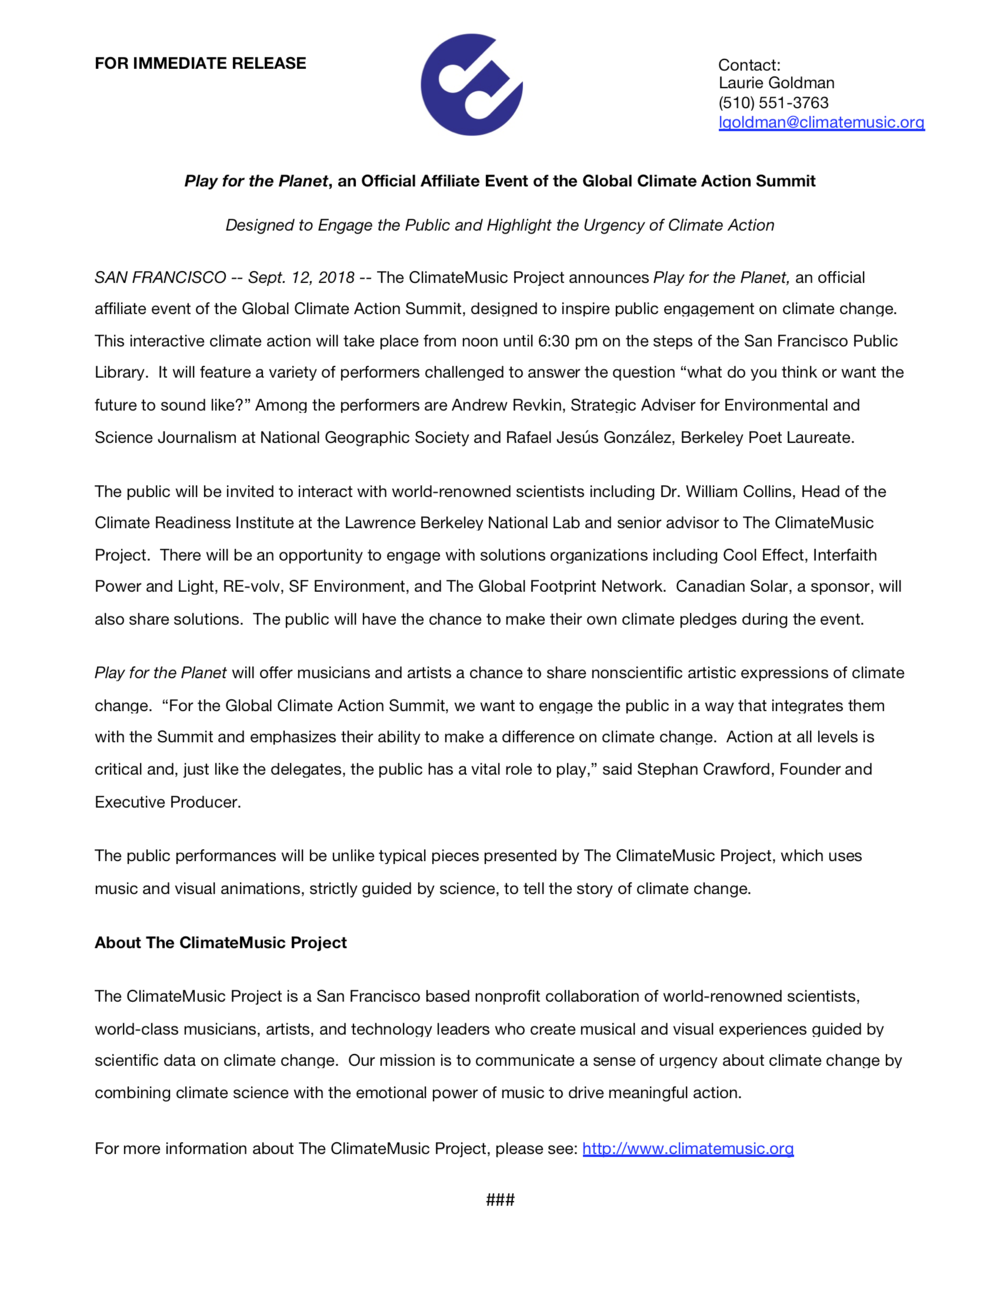 Press Release Play for the Planet 091218.png